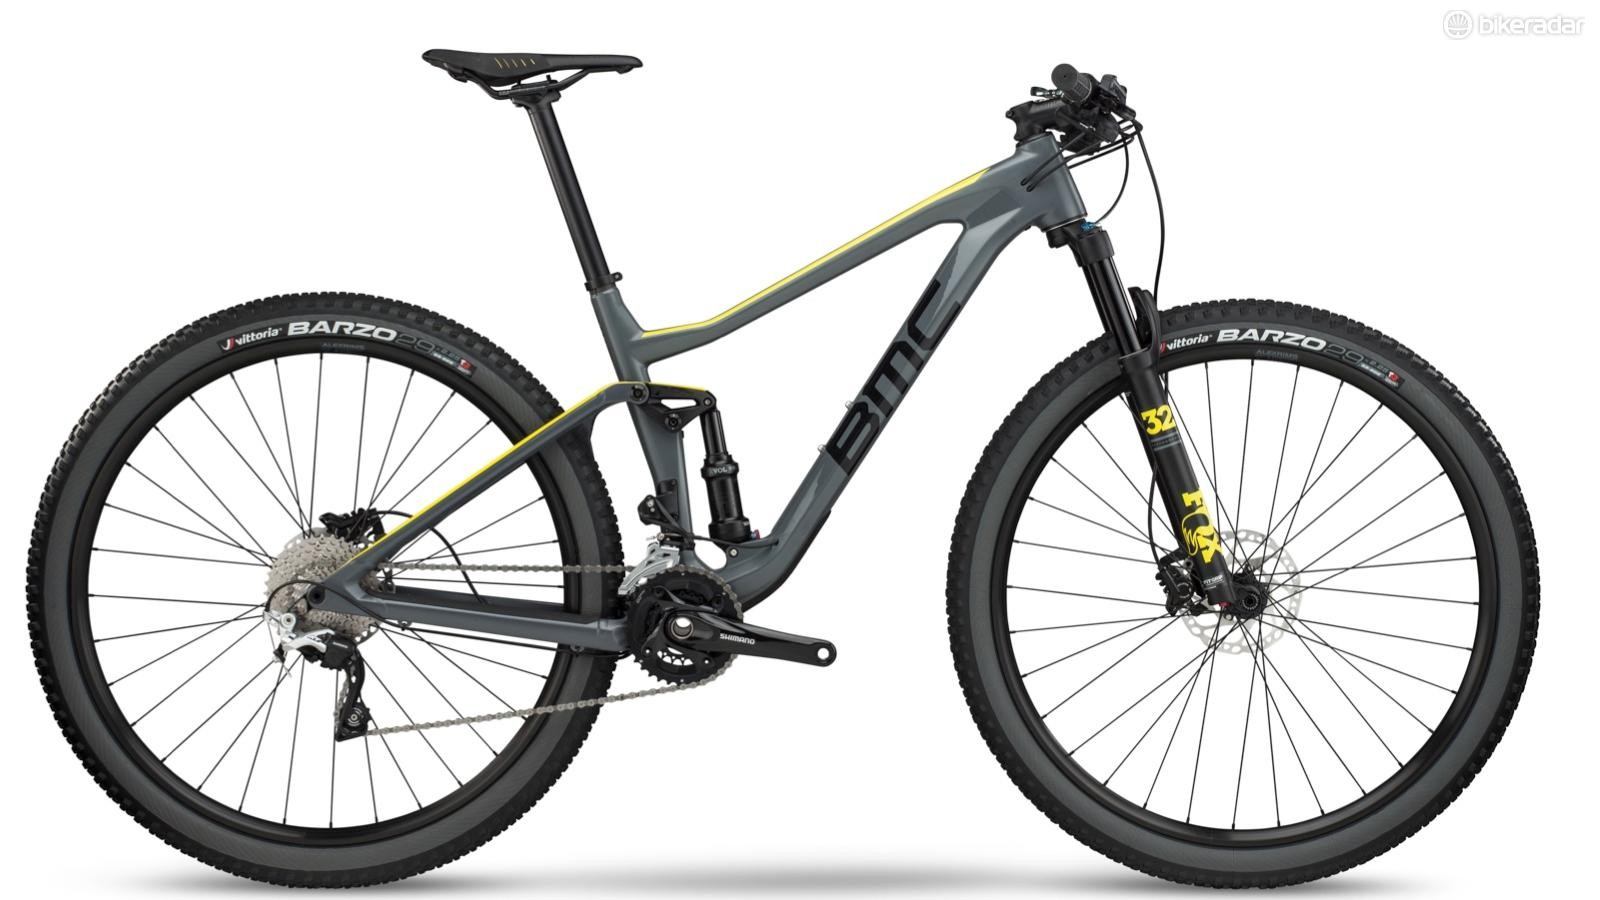 … while the base-model Agonist 02 TWO, which has an alloy rear end and cheaper spec, will cost €3,499 and  go on sale by August